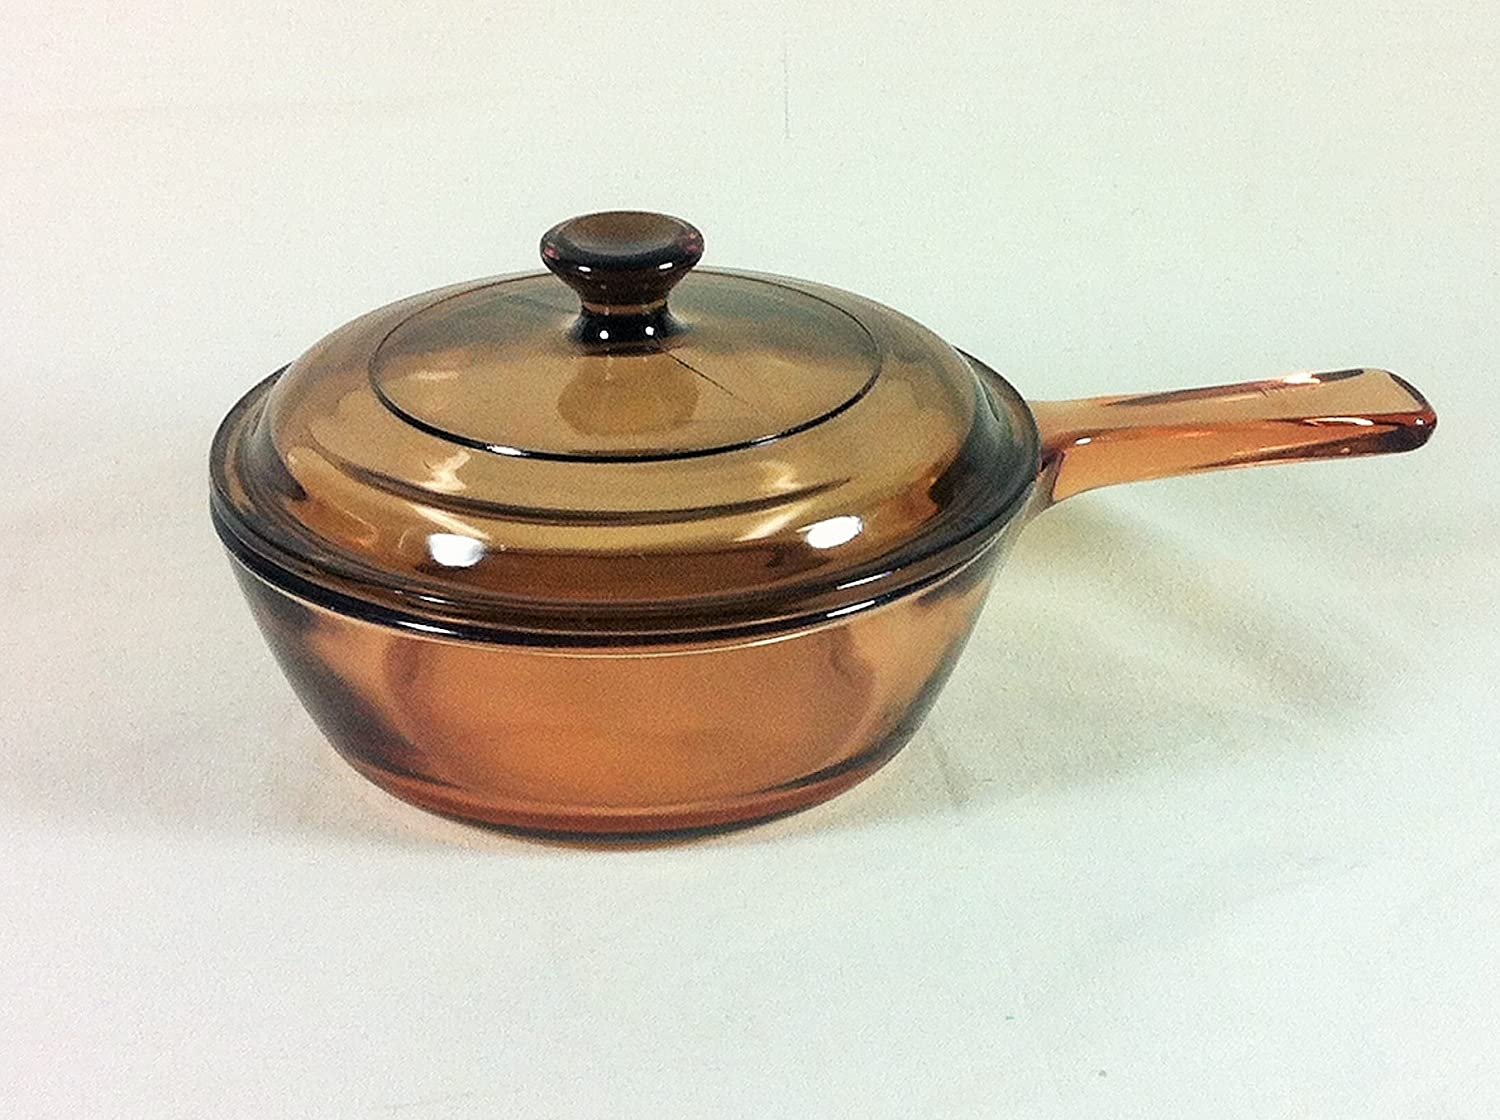 Corning .5 L Dallas Mall Vision Pan Lid with Sales Sauce